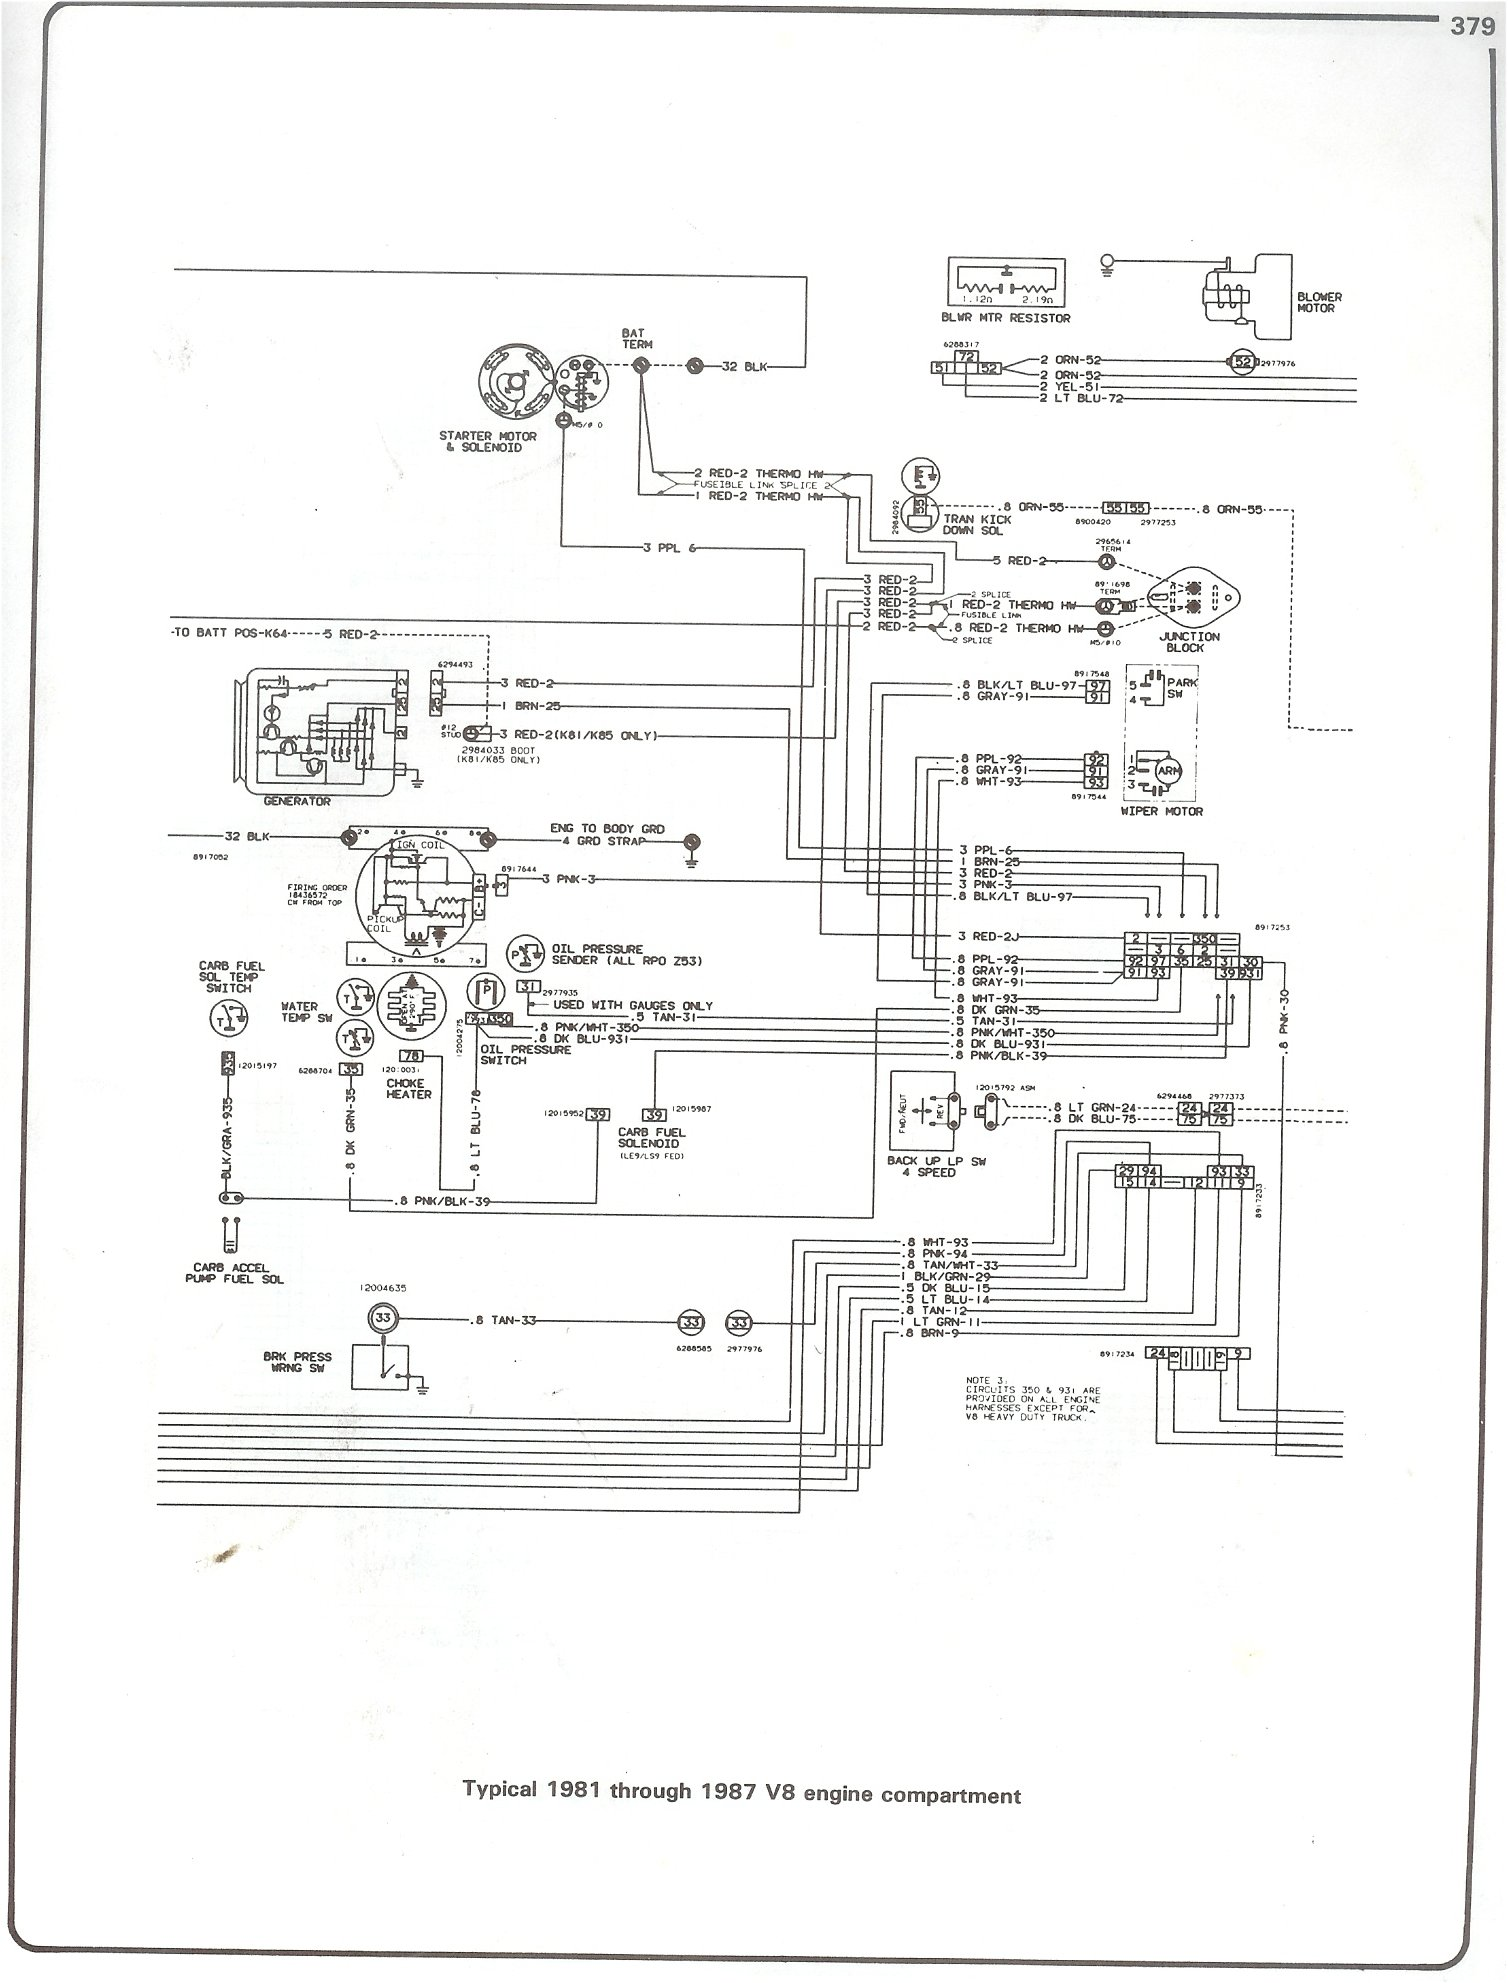 81 87_V8_engine complete 73 87 wiring diagrams 1985 chevy c10 fuse box diagram at soozxer.org